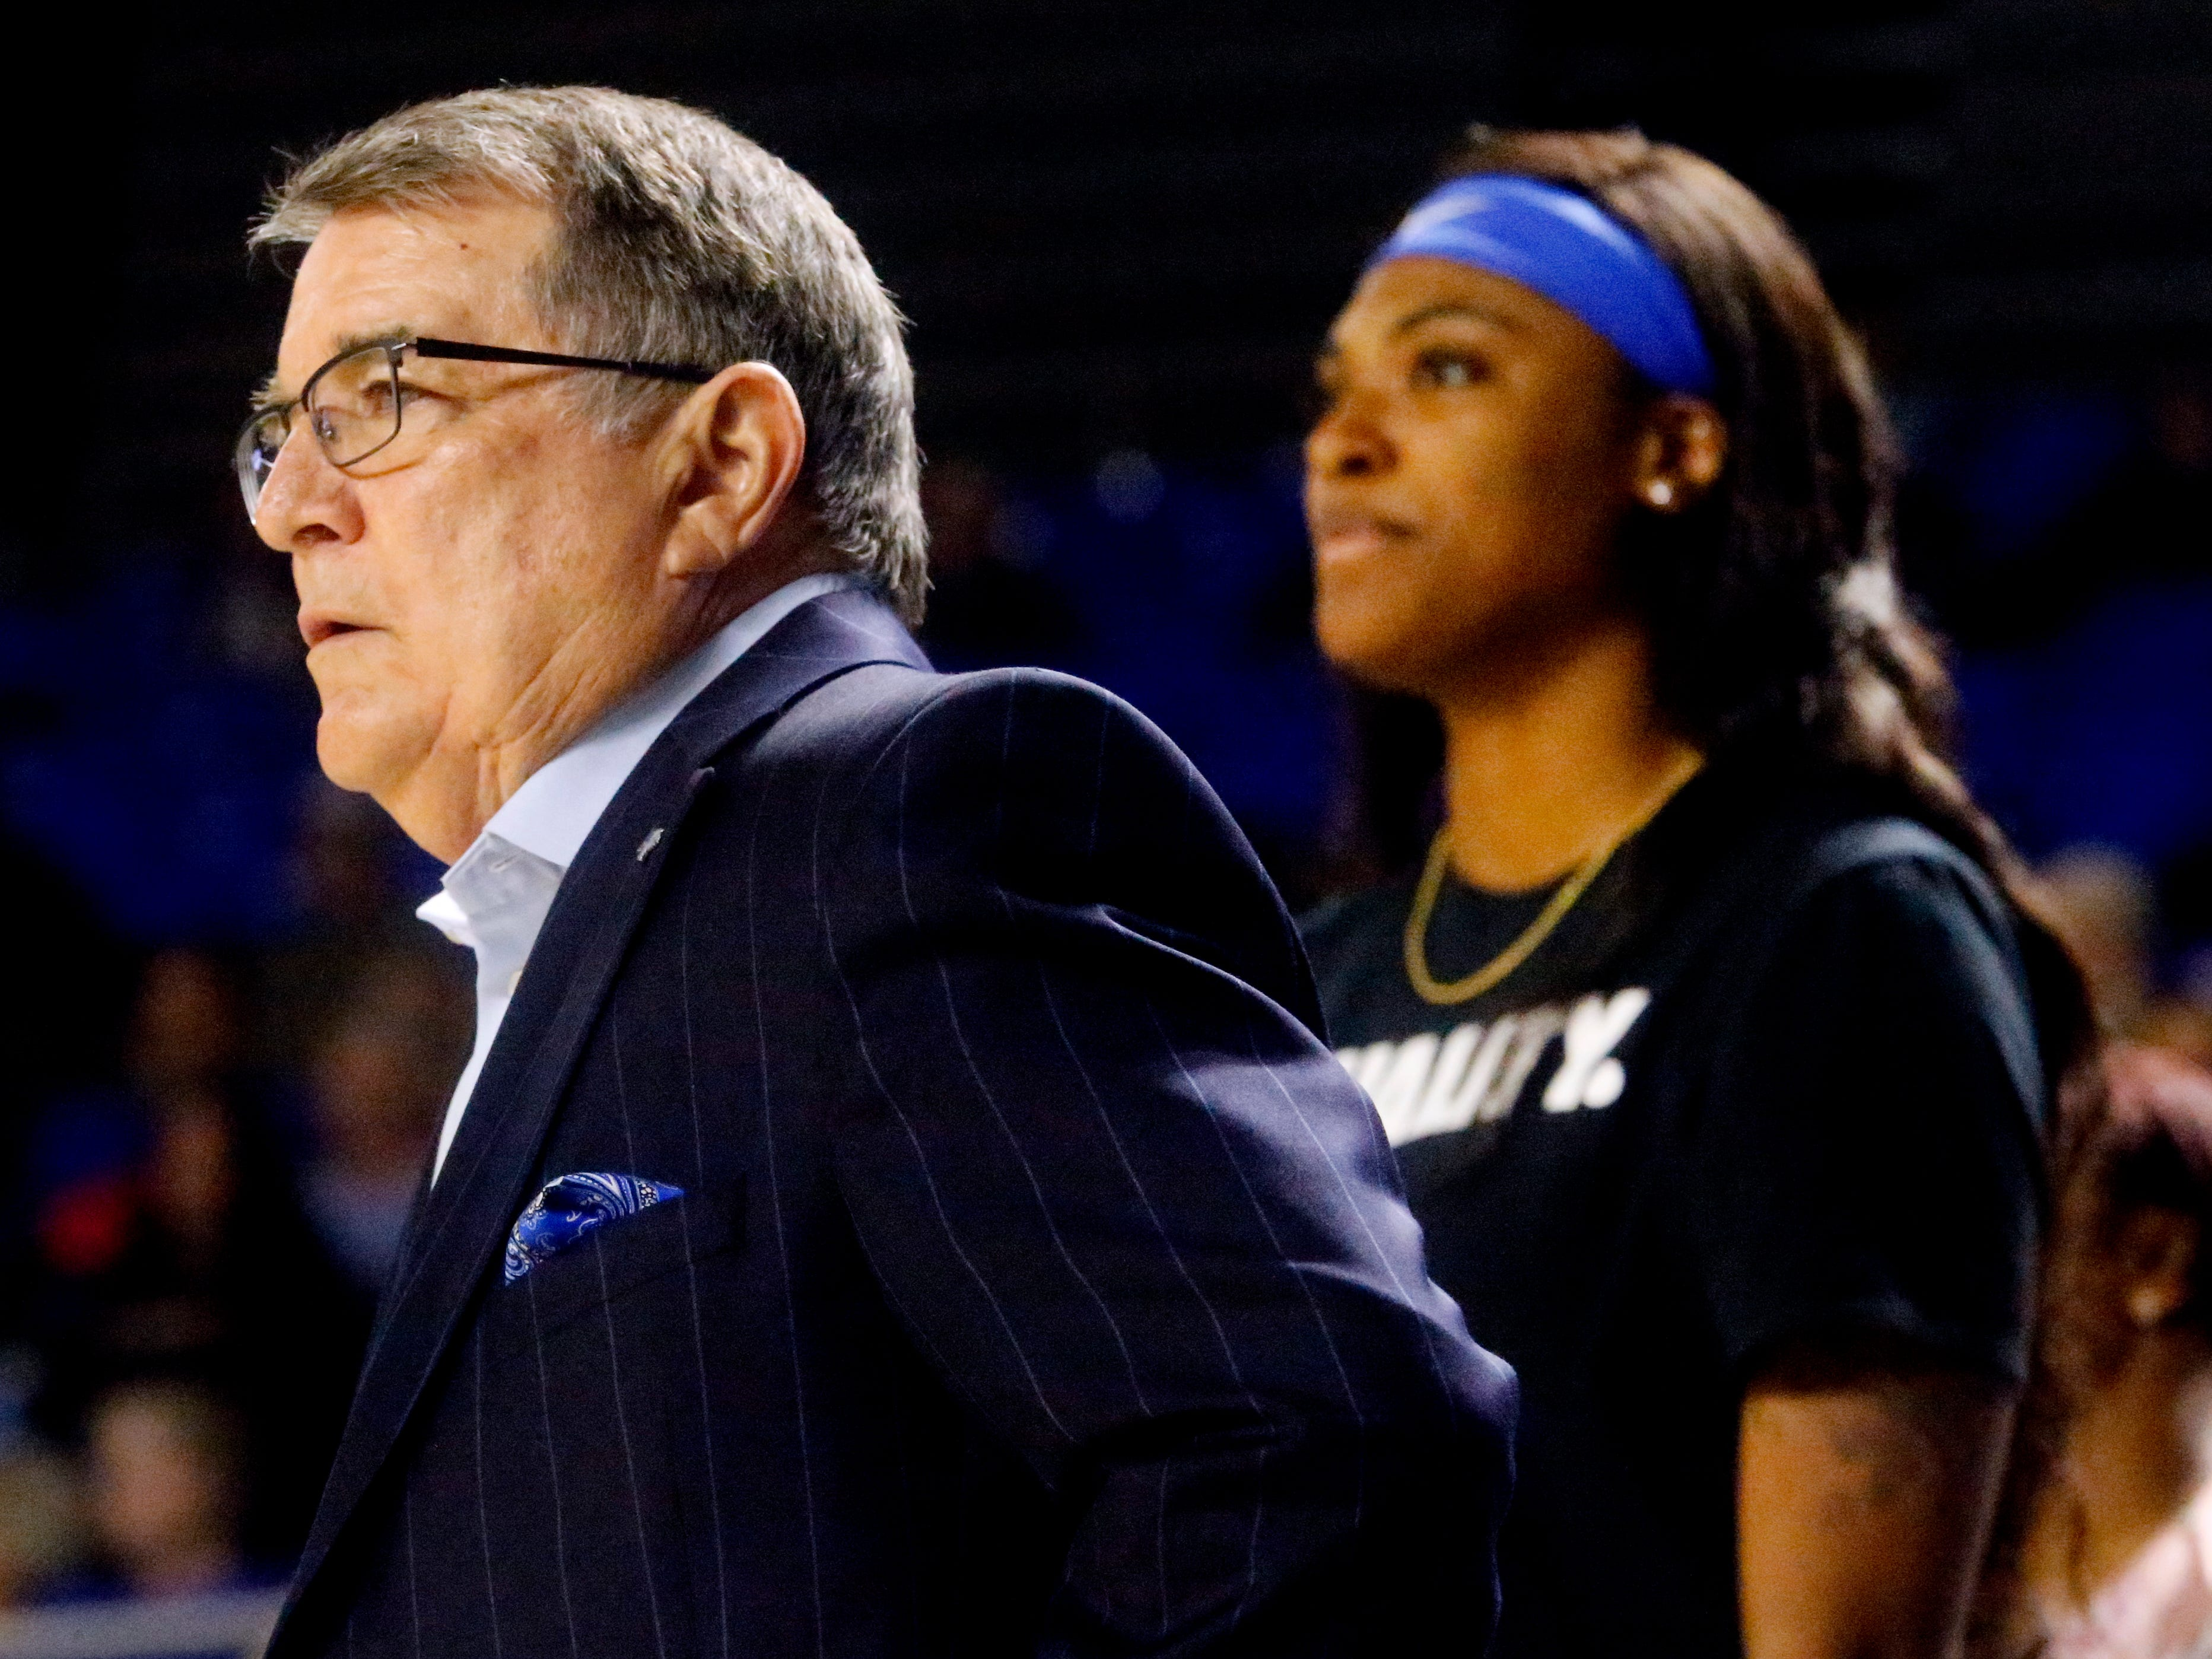 MTSU's head coach Rick Insell on the sidelines during the game against Southern Miss, on Thursday Jan. 10, 2019.